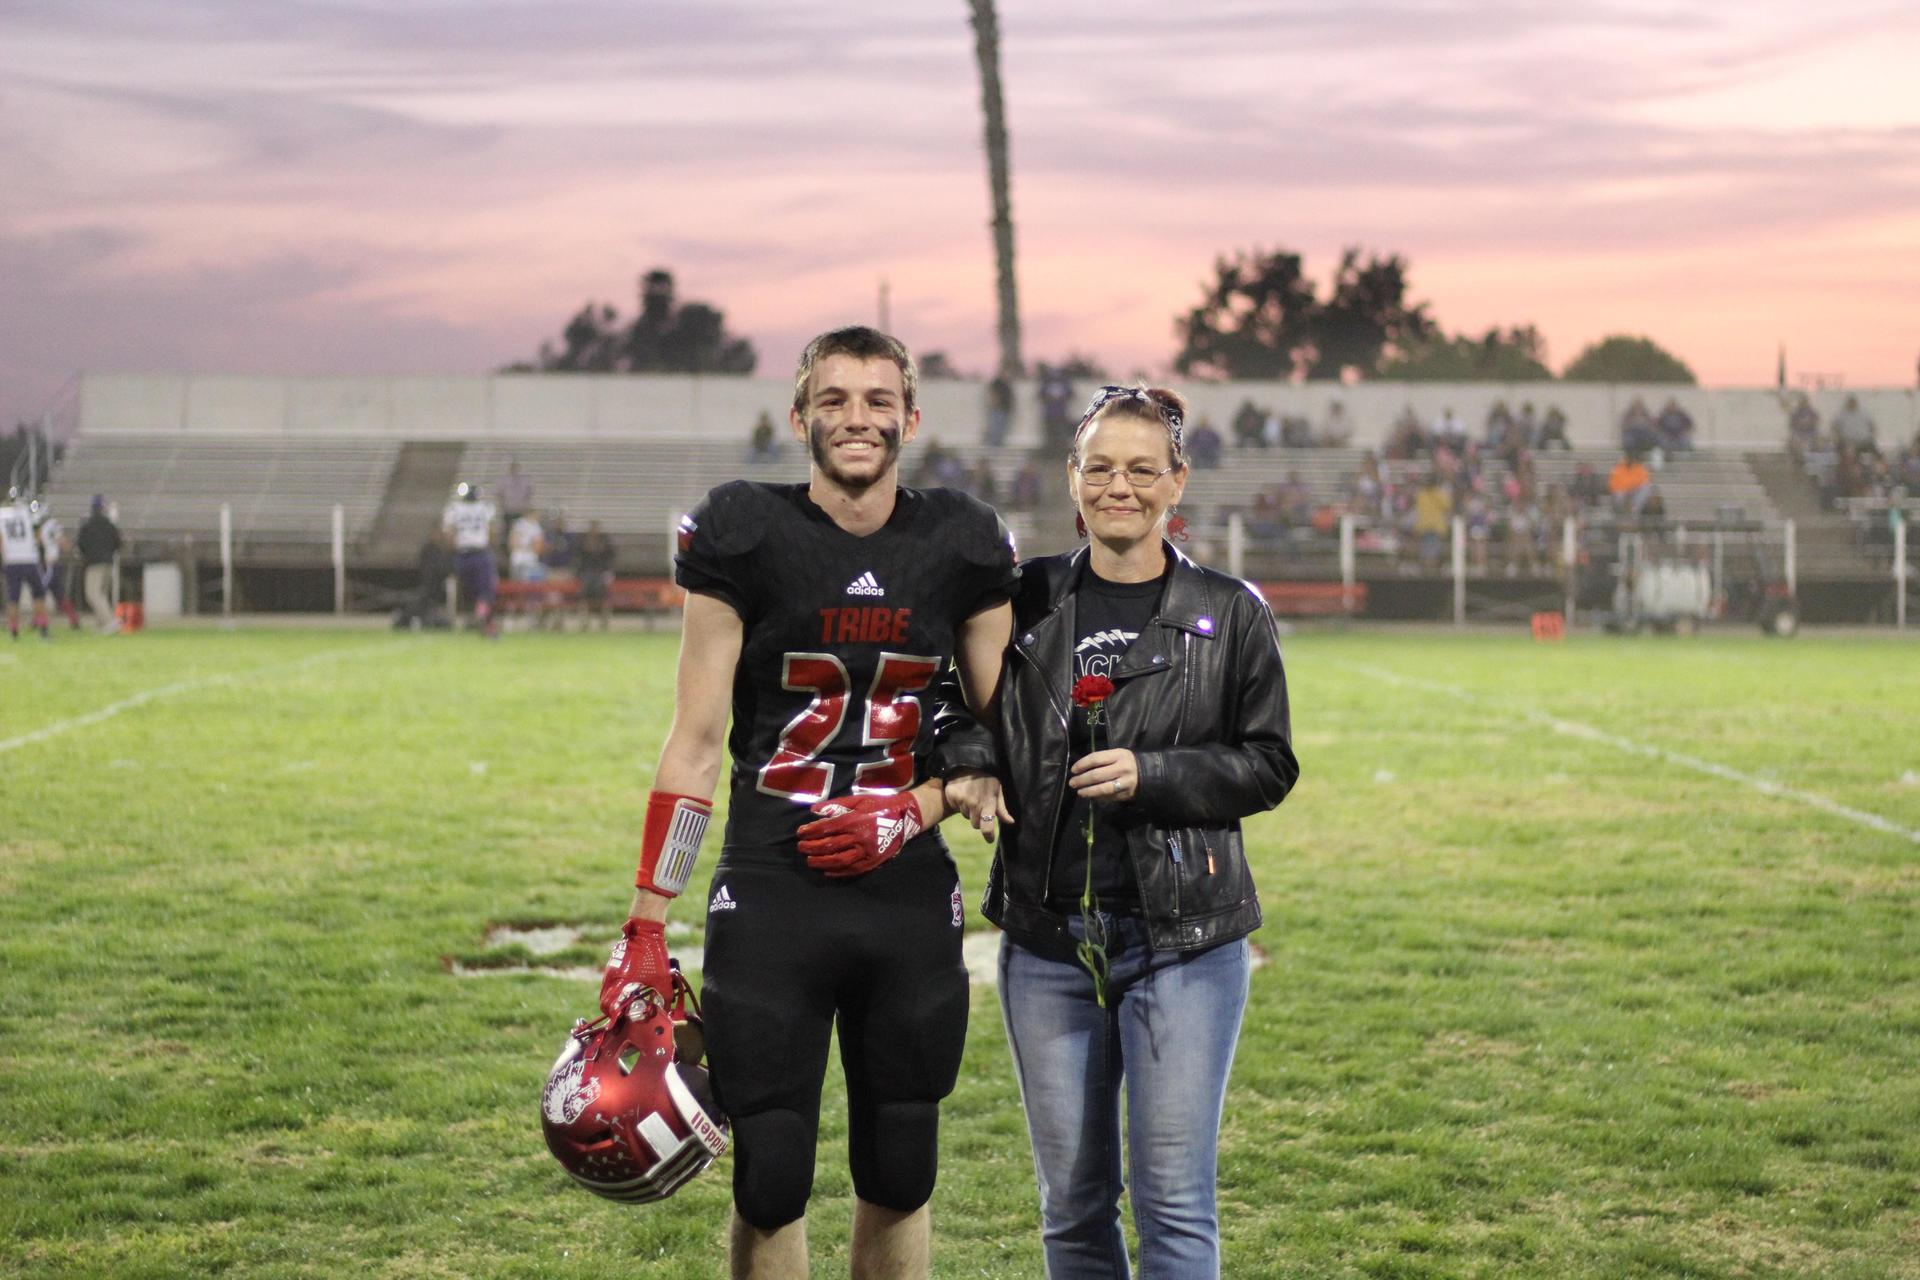 Senior football player Will Downham and his escort.